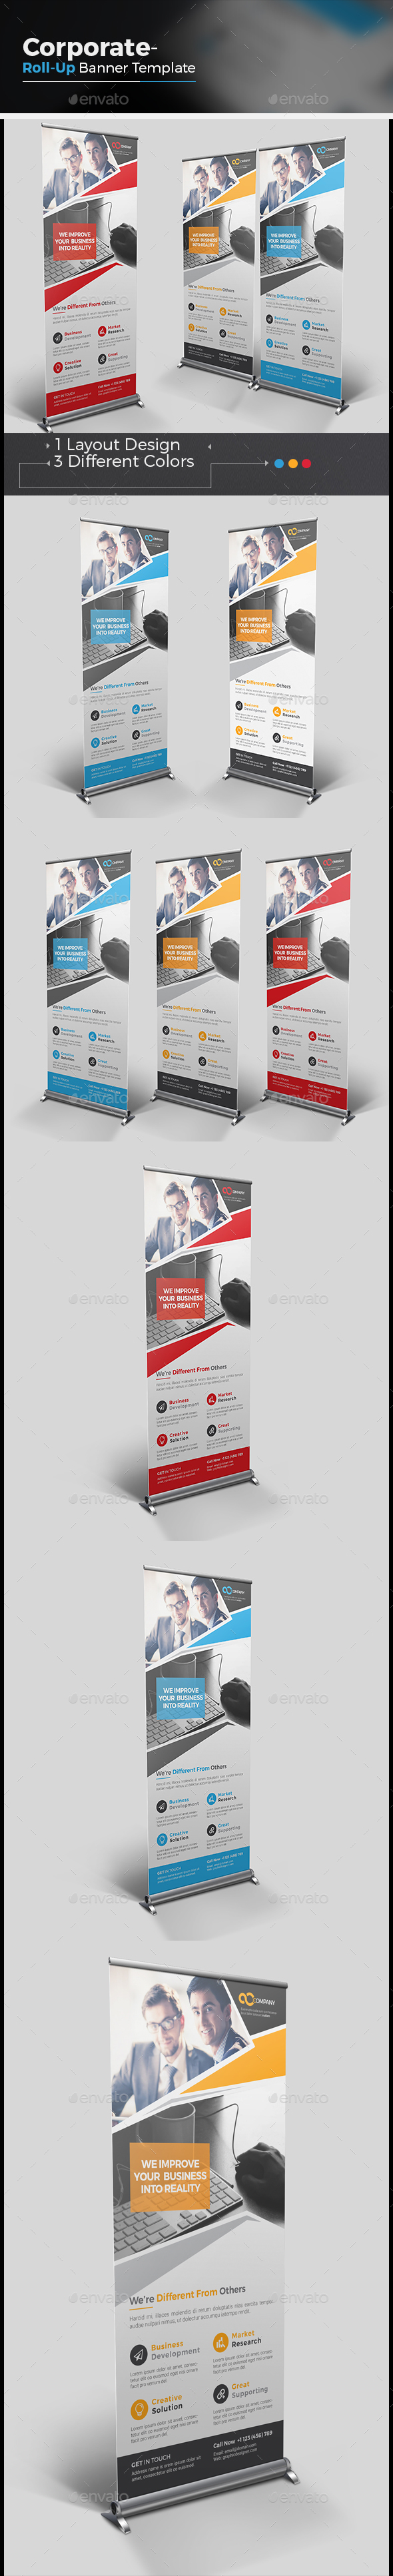 Corporate Roll-up Banner - Corporate Flyers